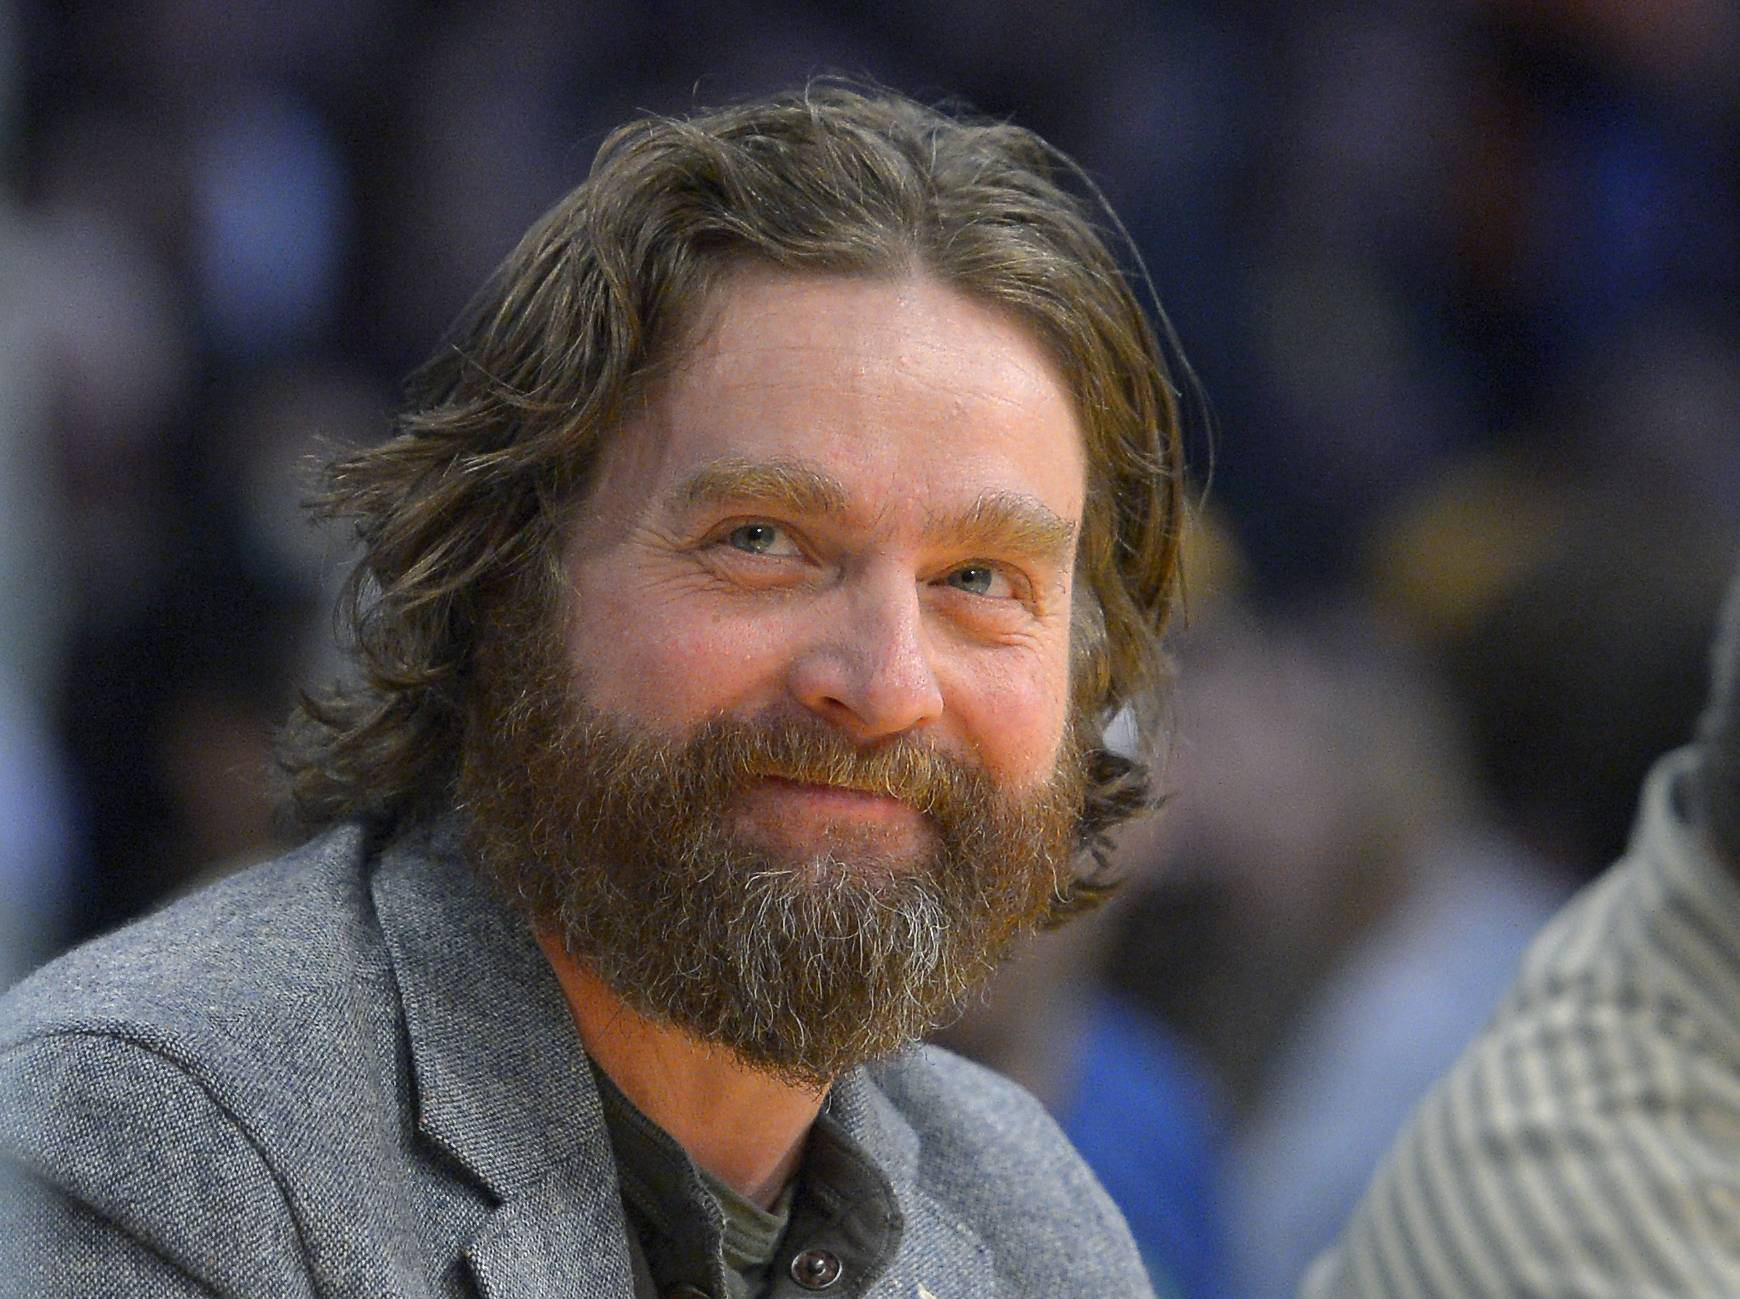 "President Barack Obama is hamming it up online to promote his health care plan. Obama joked Tuesday with actor Zach Galifianakis, including poking fun at the poorly reviewed ""Hangover Part III"" during an interview on the website Funny or Die."